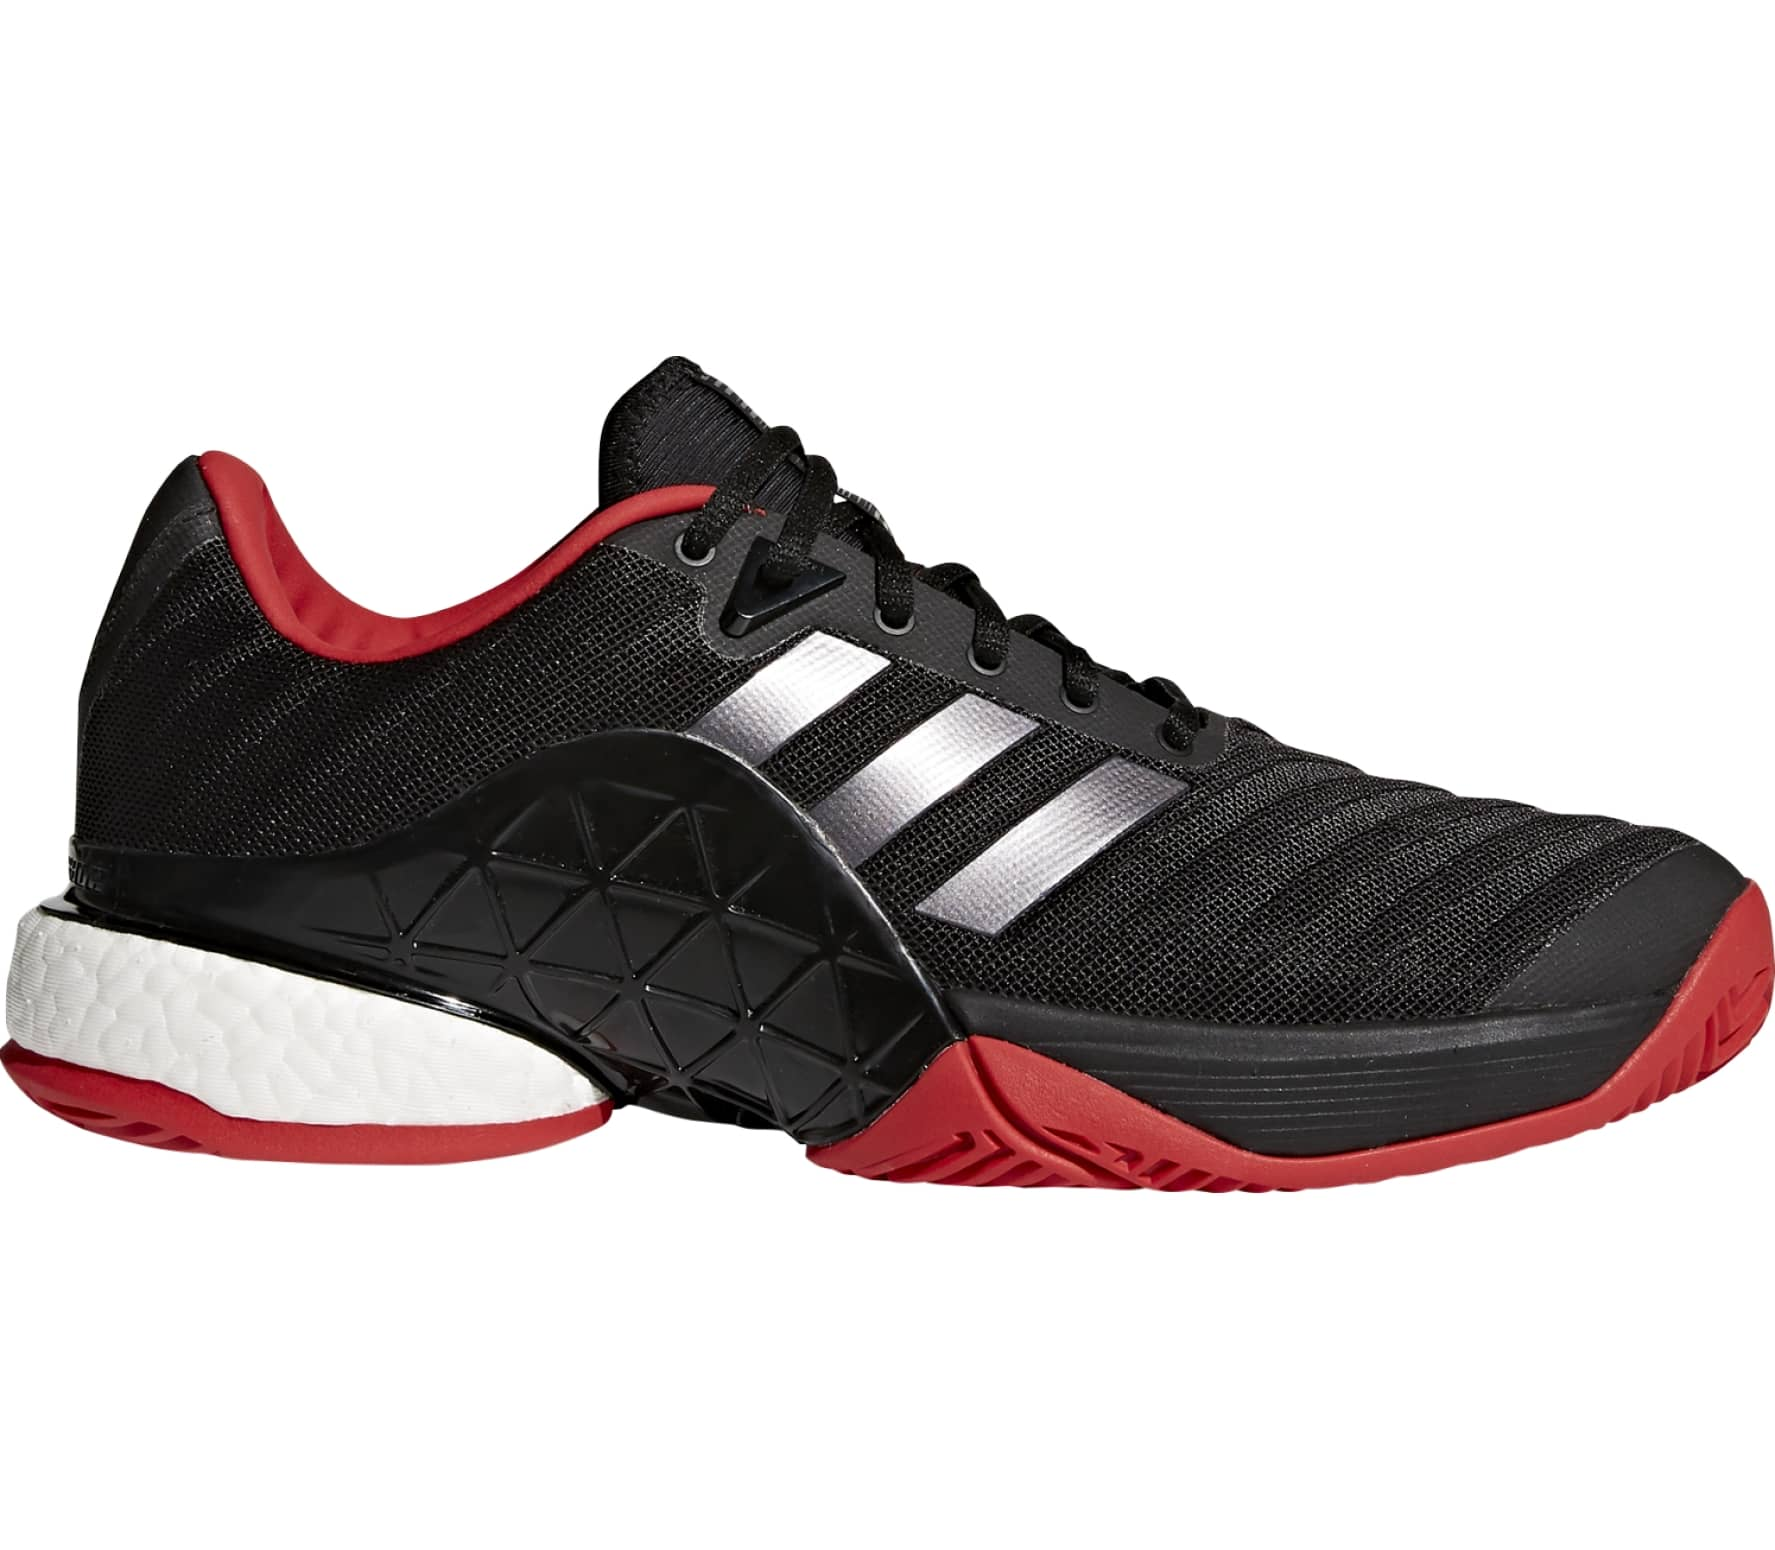 e2a4aff8a17f Adidas - Barricade 2018 Boost men s tennis shoes (black red) - buy ...